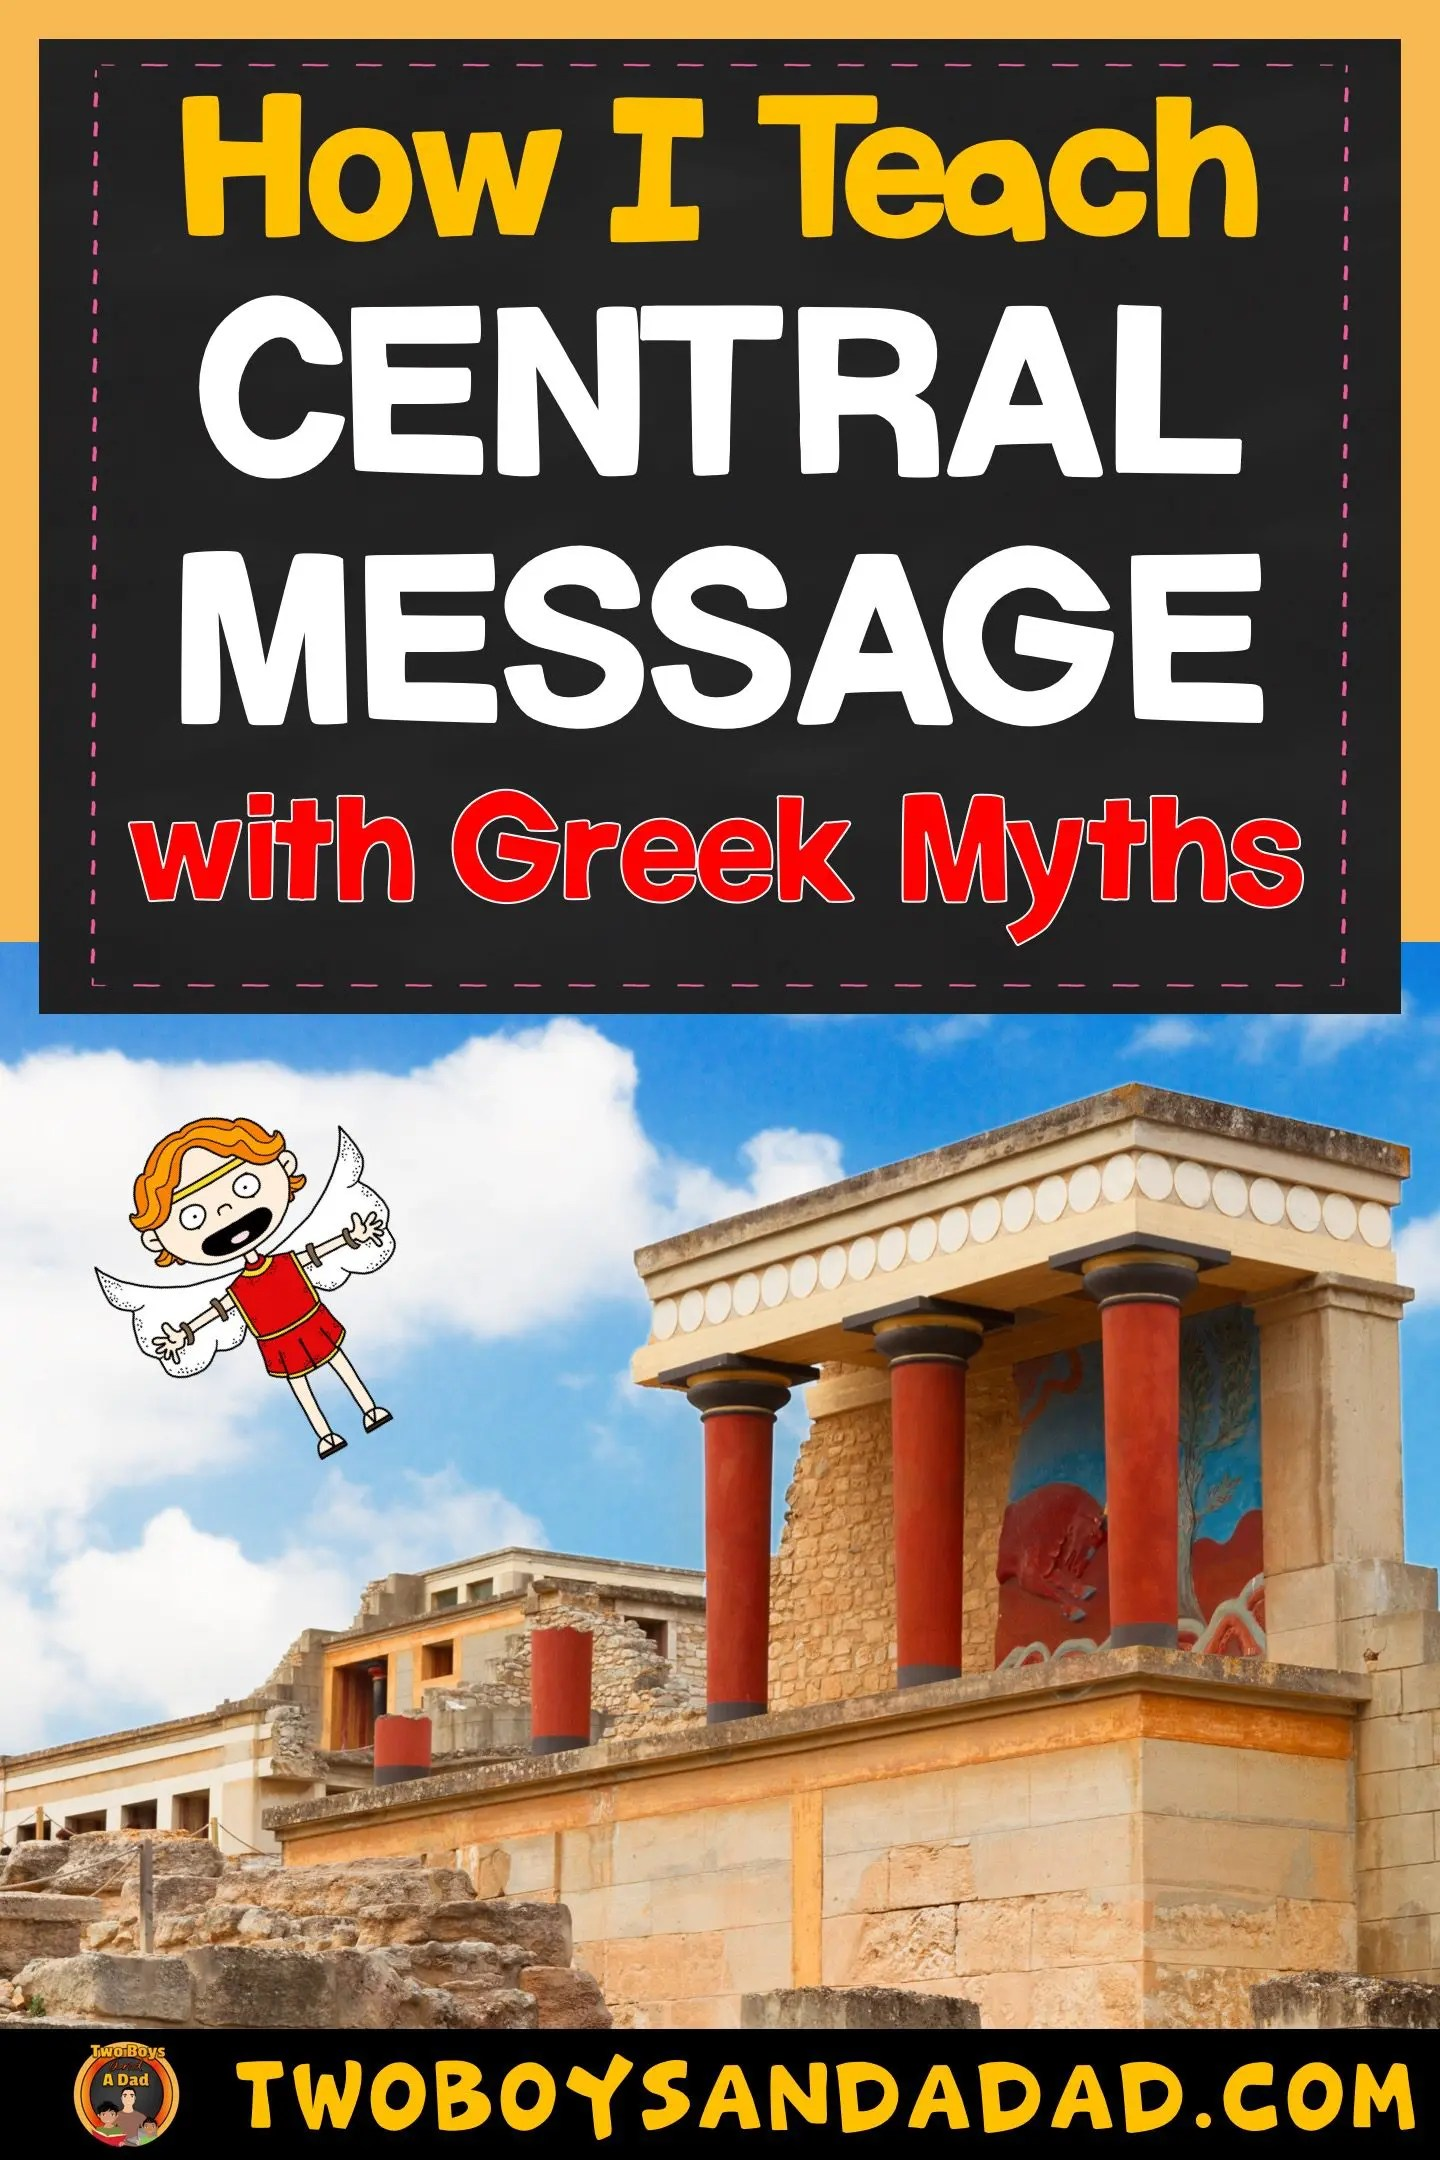 hight resolution of Teaching the Central Message with Awesome Greek Myths - Two Boys and a Dad